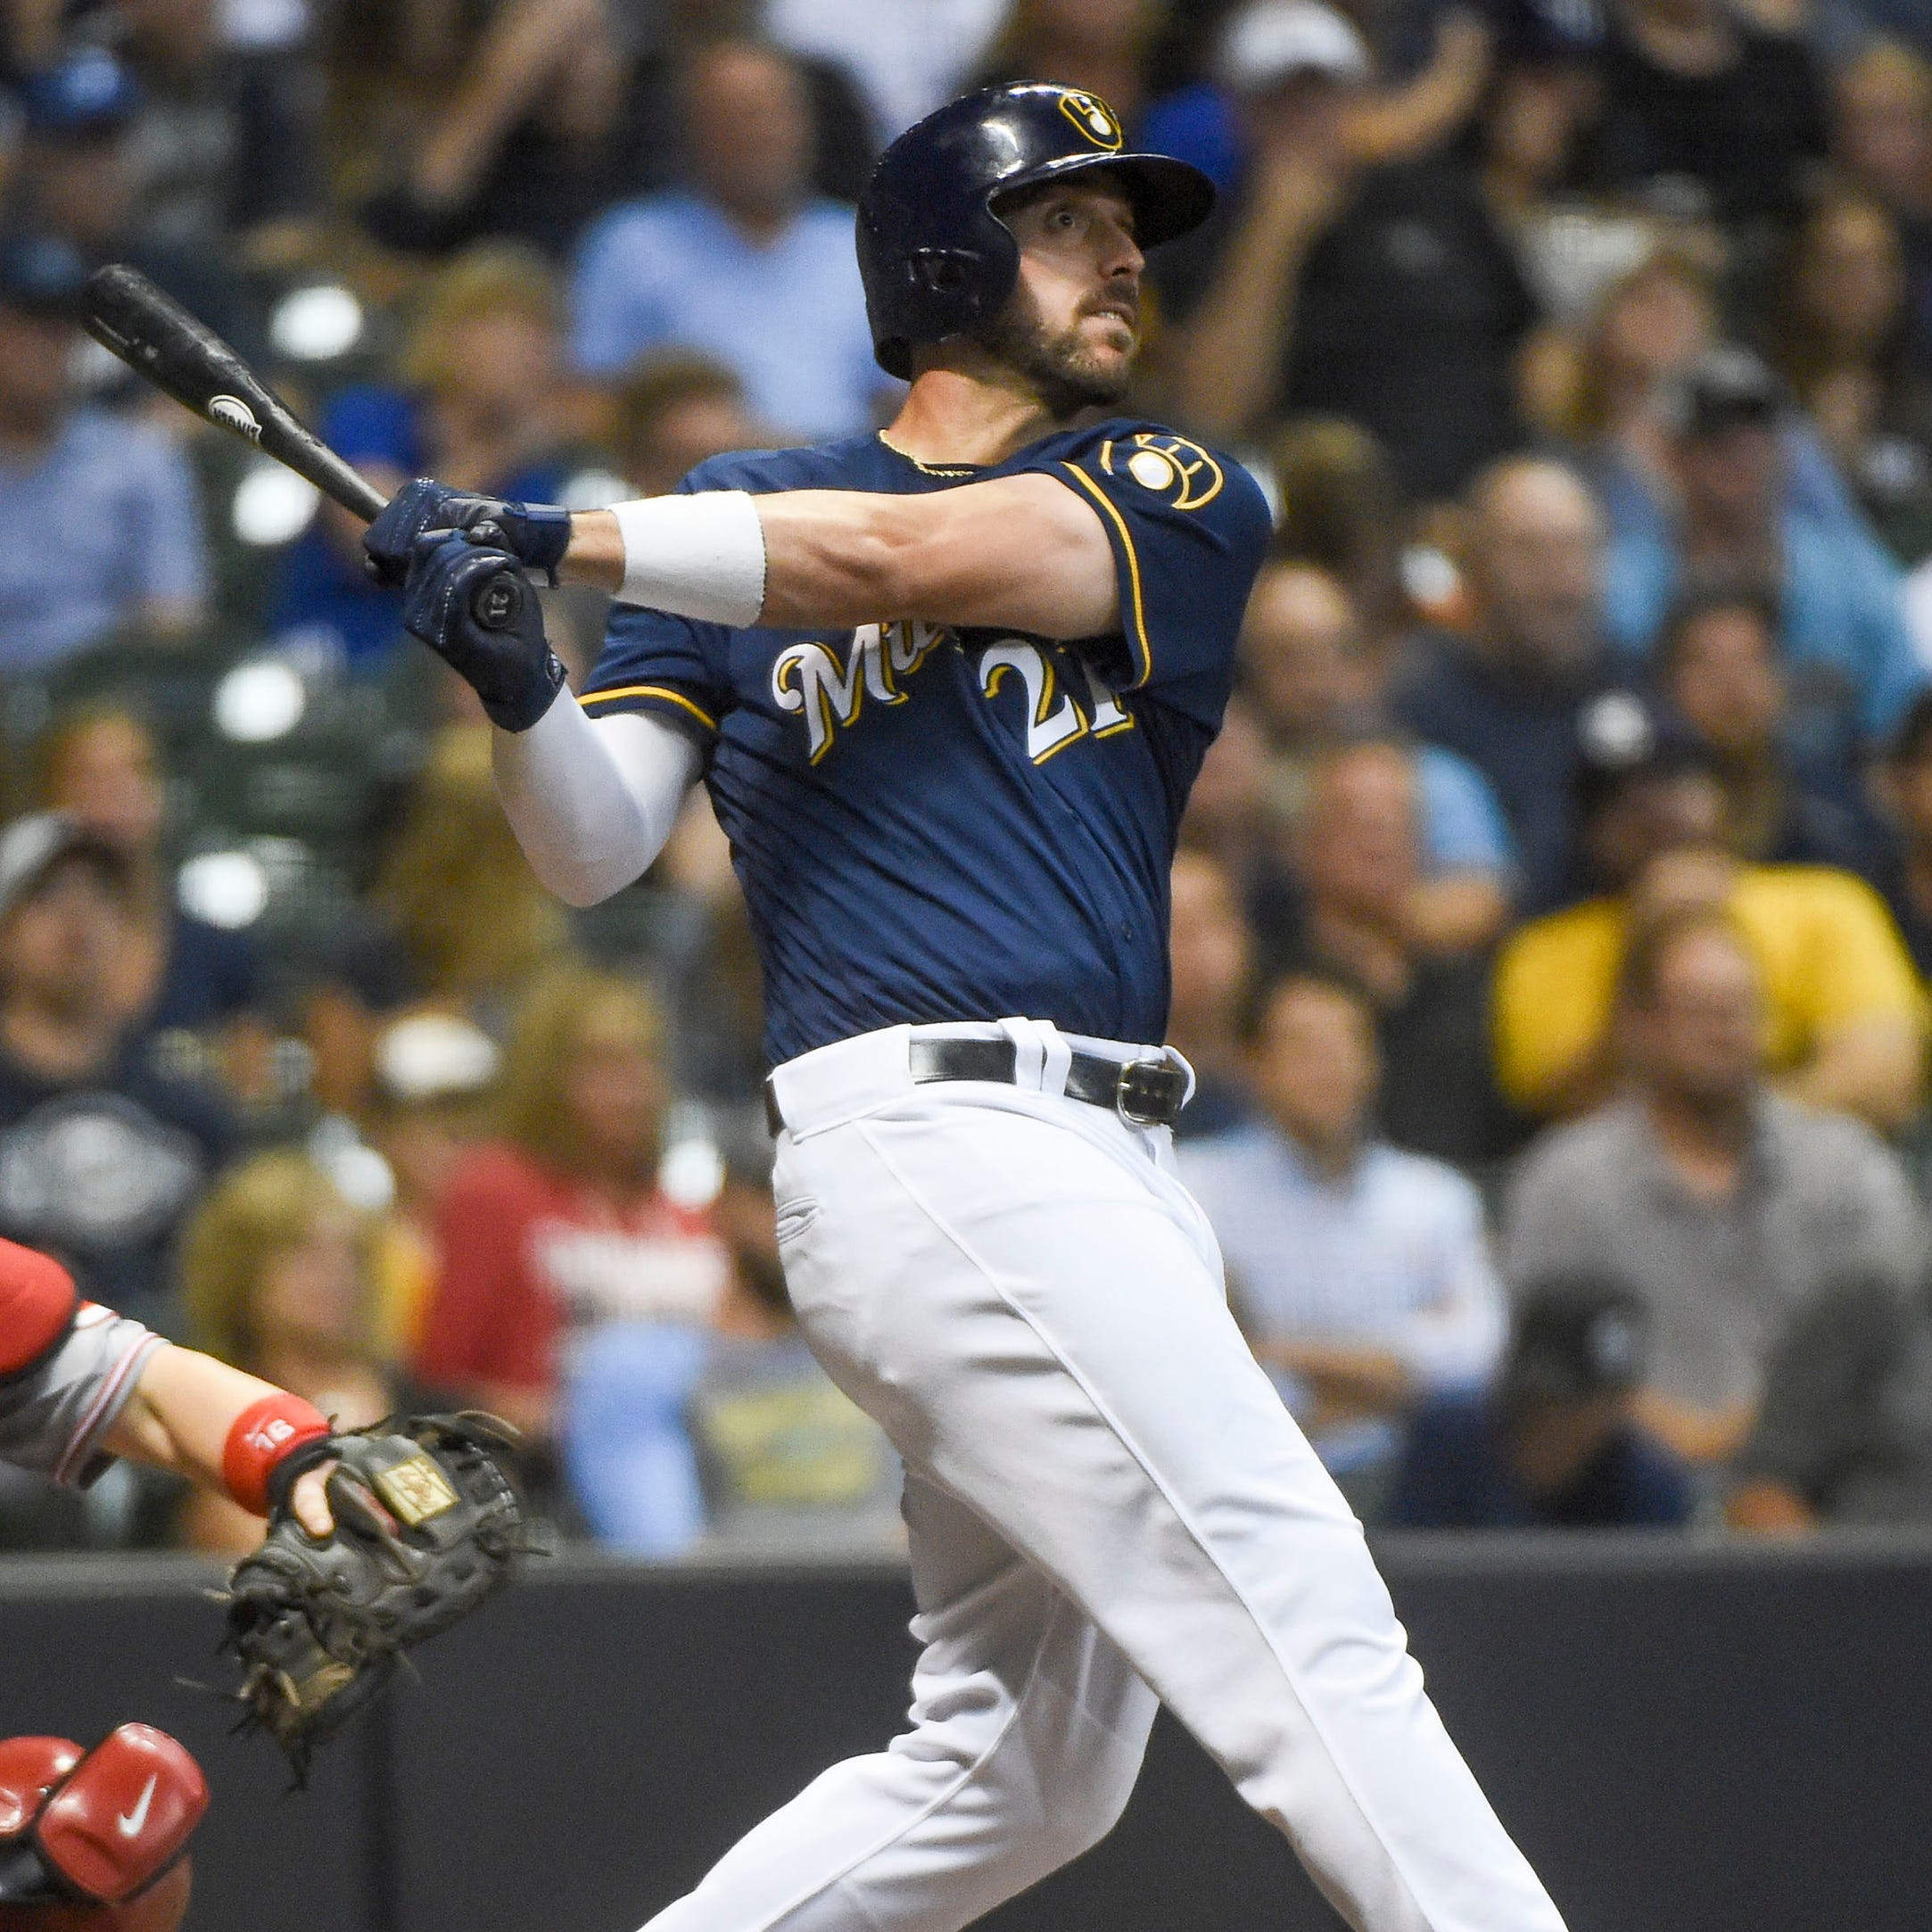 Brewers 5, Reds 2: Patience pays off for Brewers, Anderson